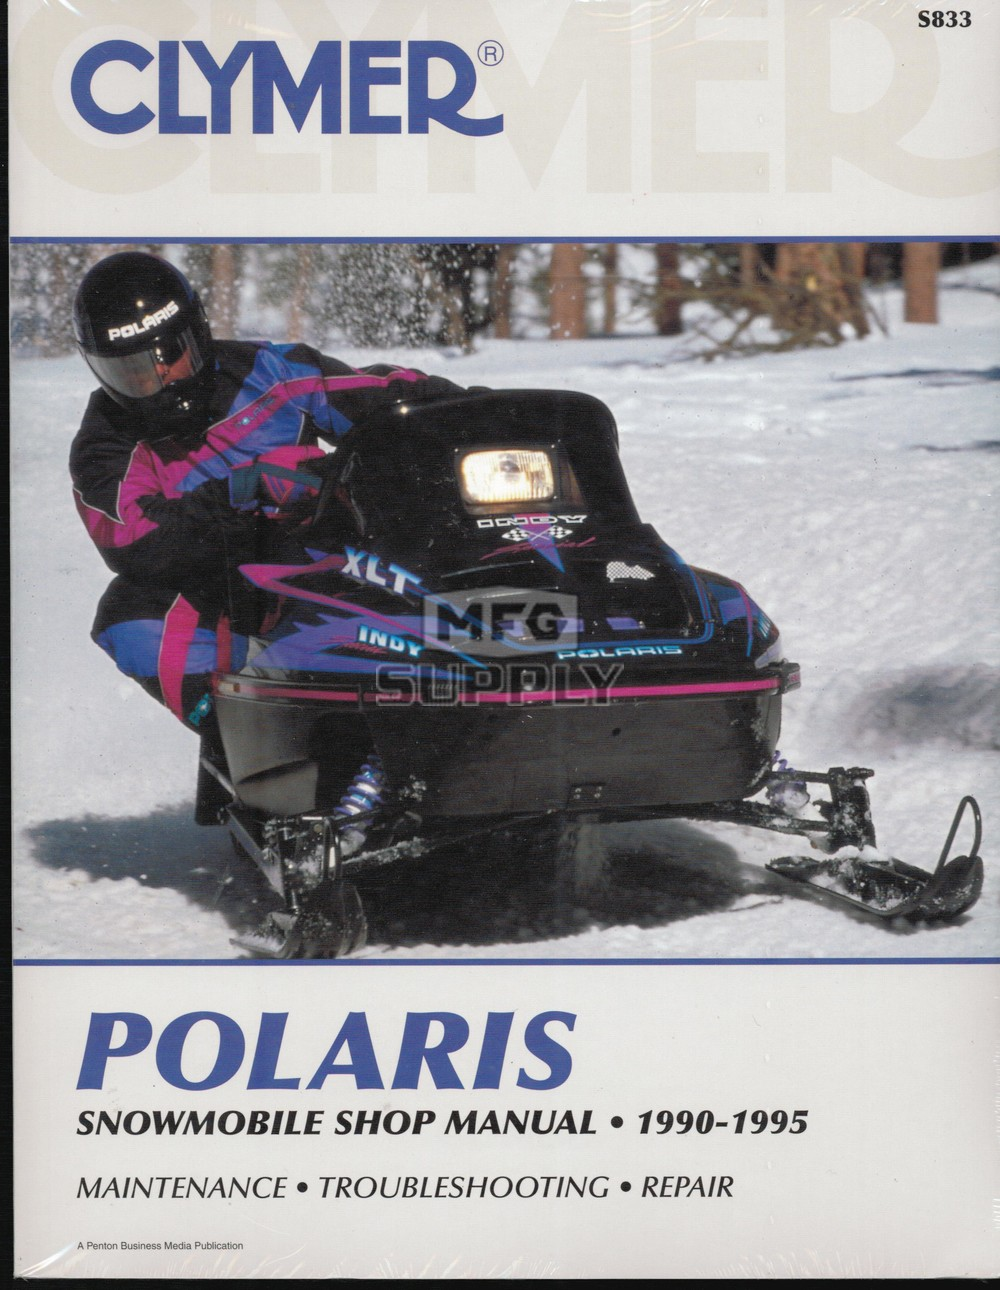 cs833 90 95 polaris snowmobile shop manual snowmobile parts cs833 90 95 polaris snowmobile shop manual